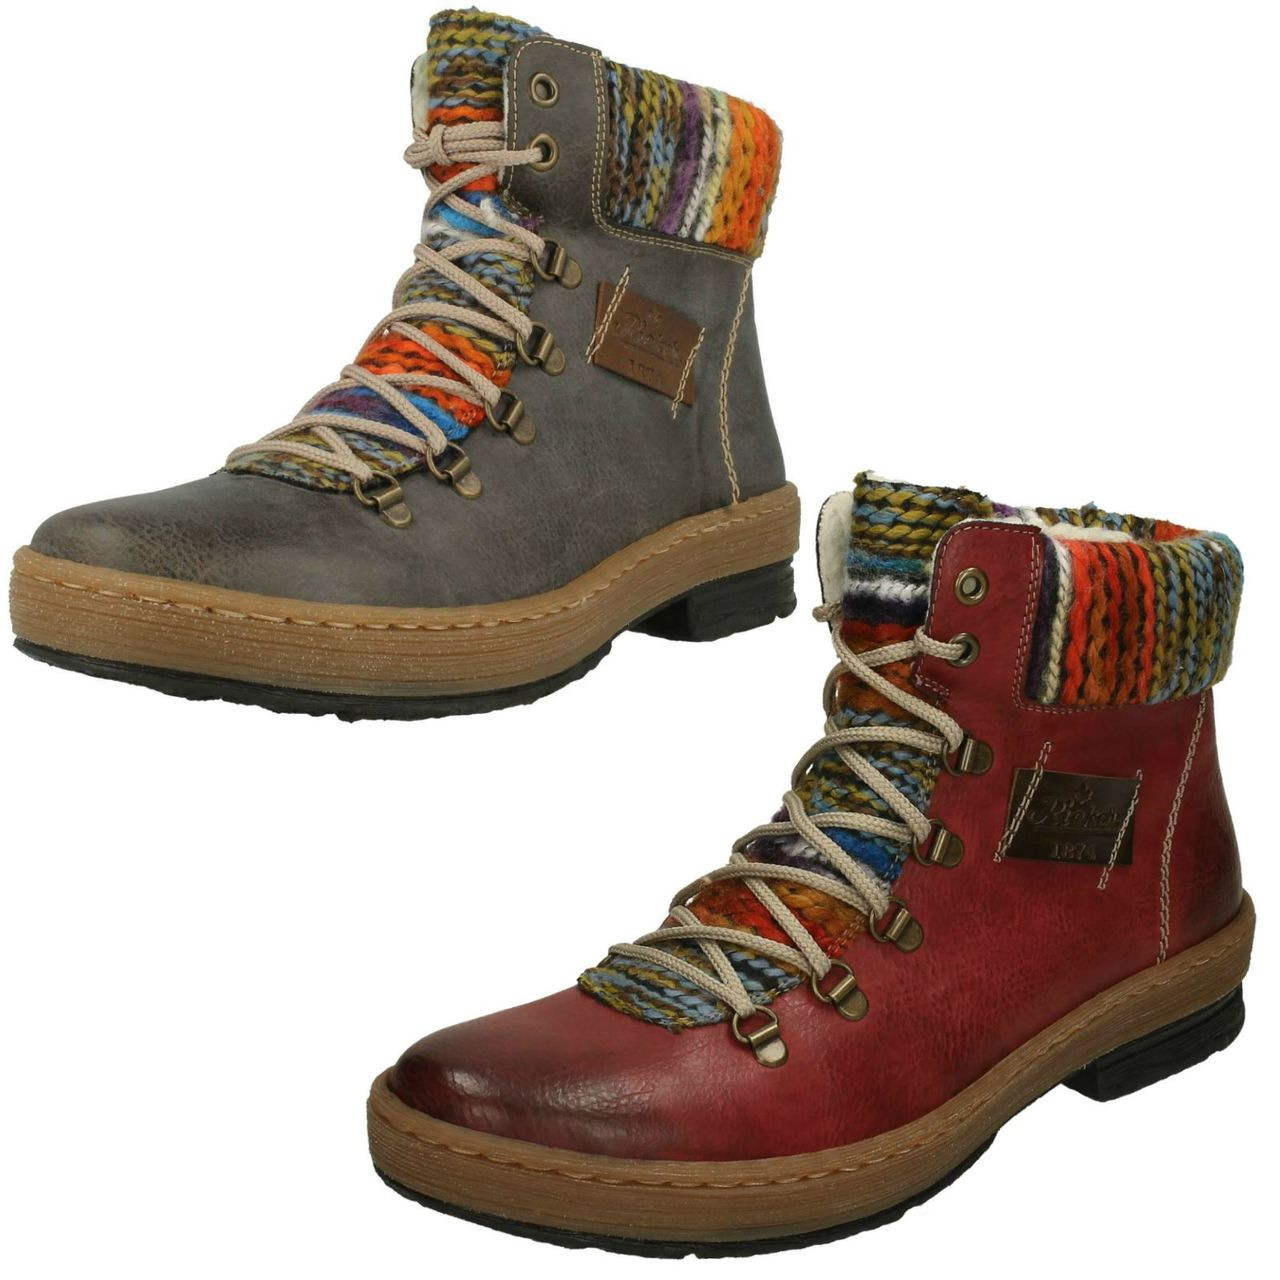 RIEKER Rieker Gray Multi Colored Ankle Boots   Womens Boots